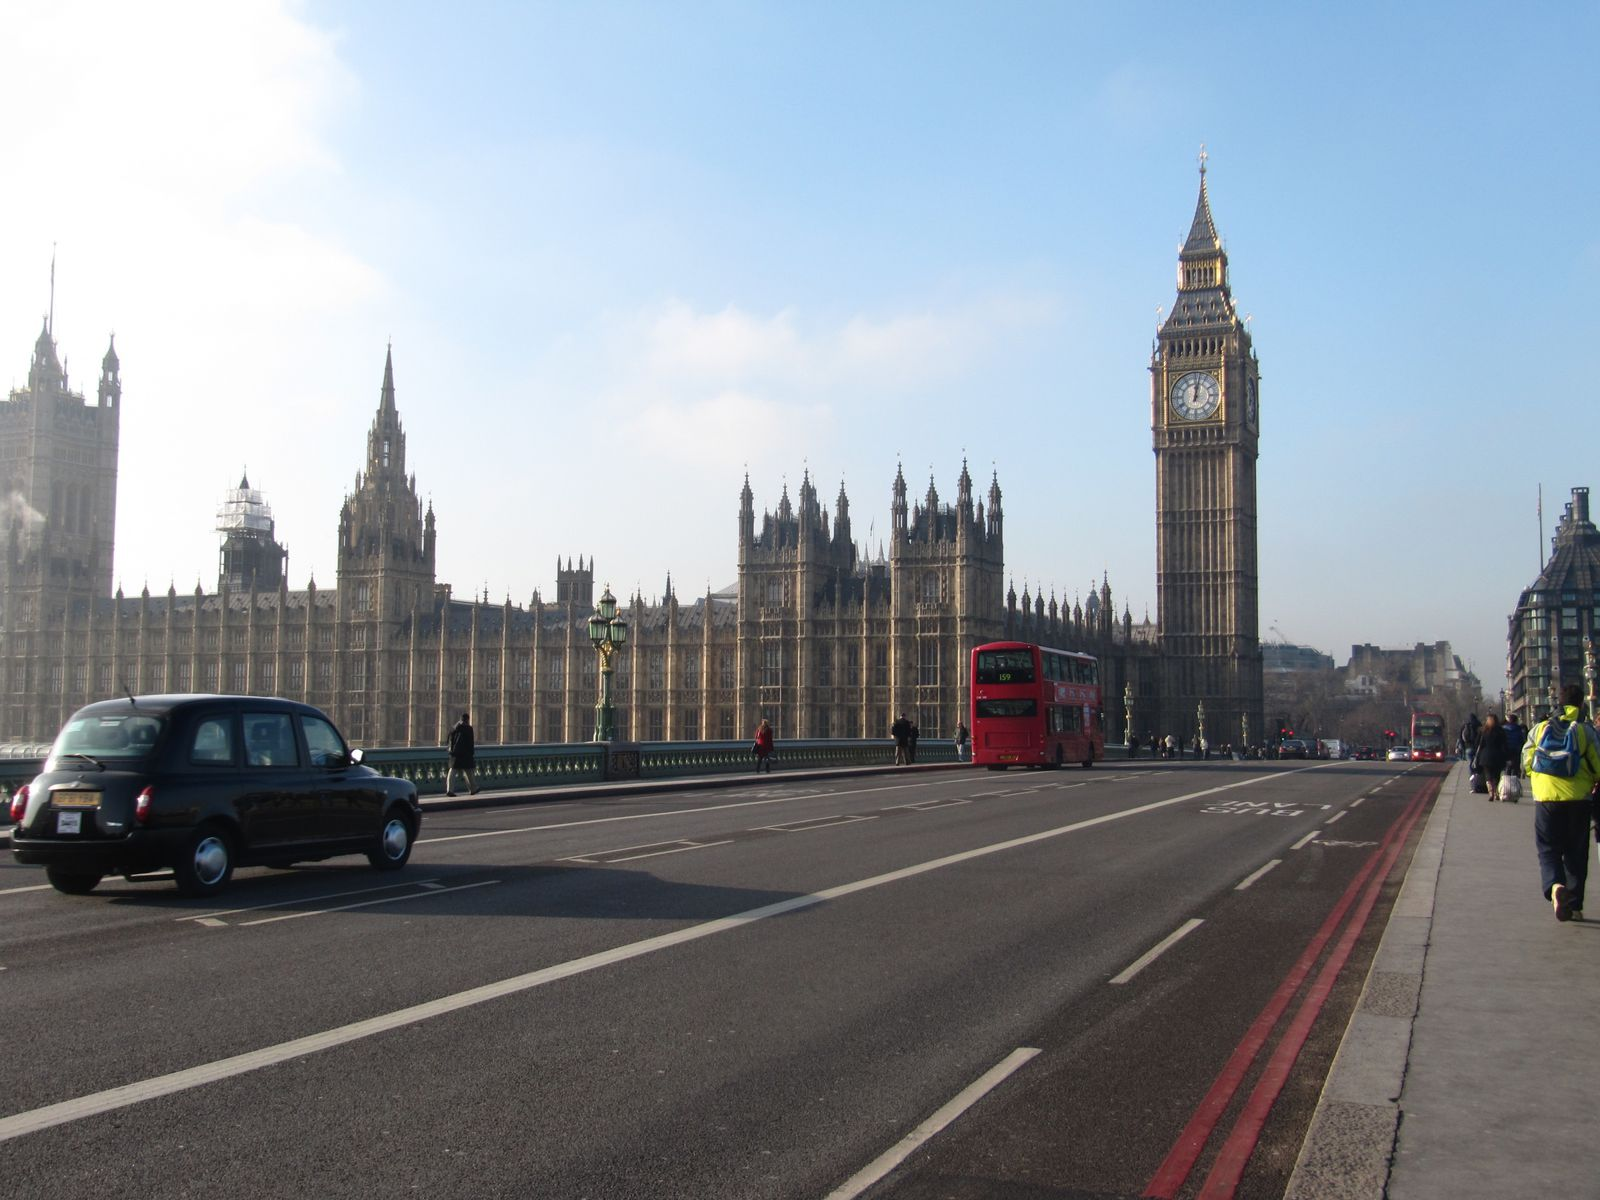 Westminster bridge & the House of Parliament